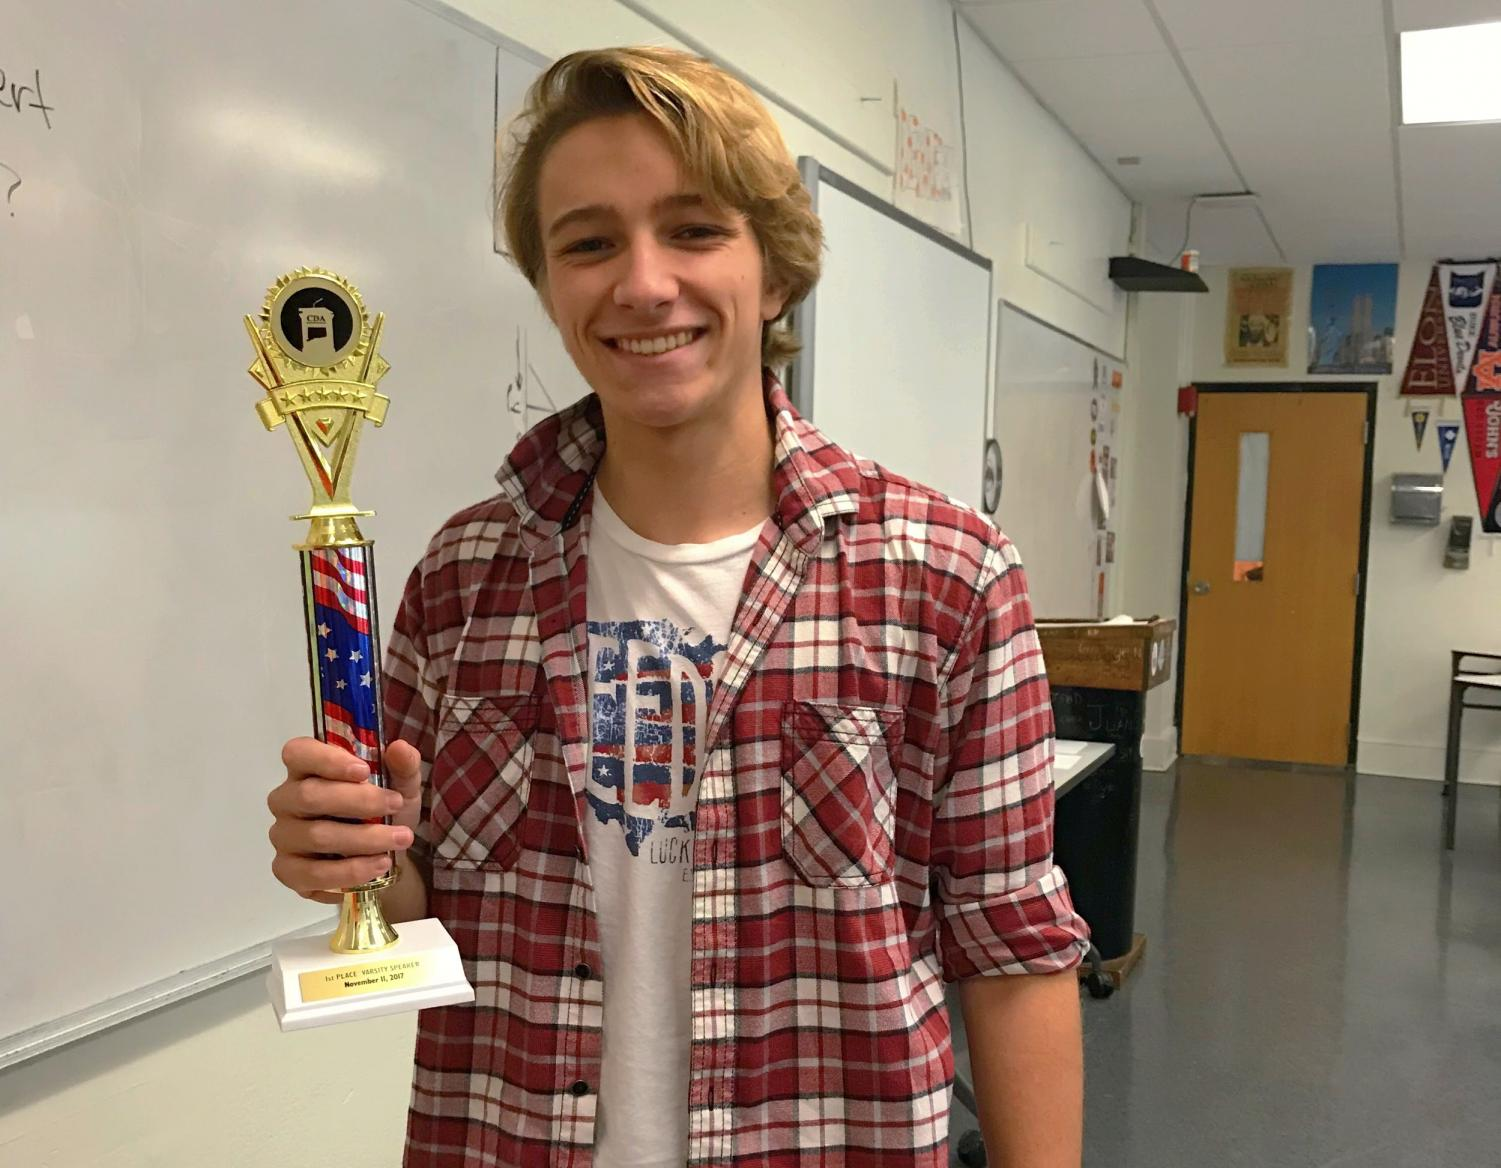 Doricko proudly posing with his First Place Speaker Trophy from the November 11 Tournament.